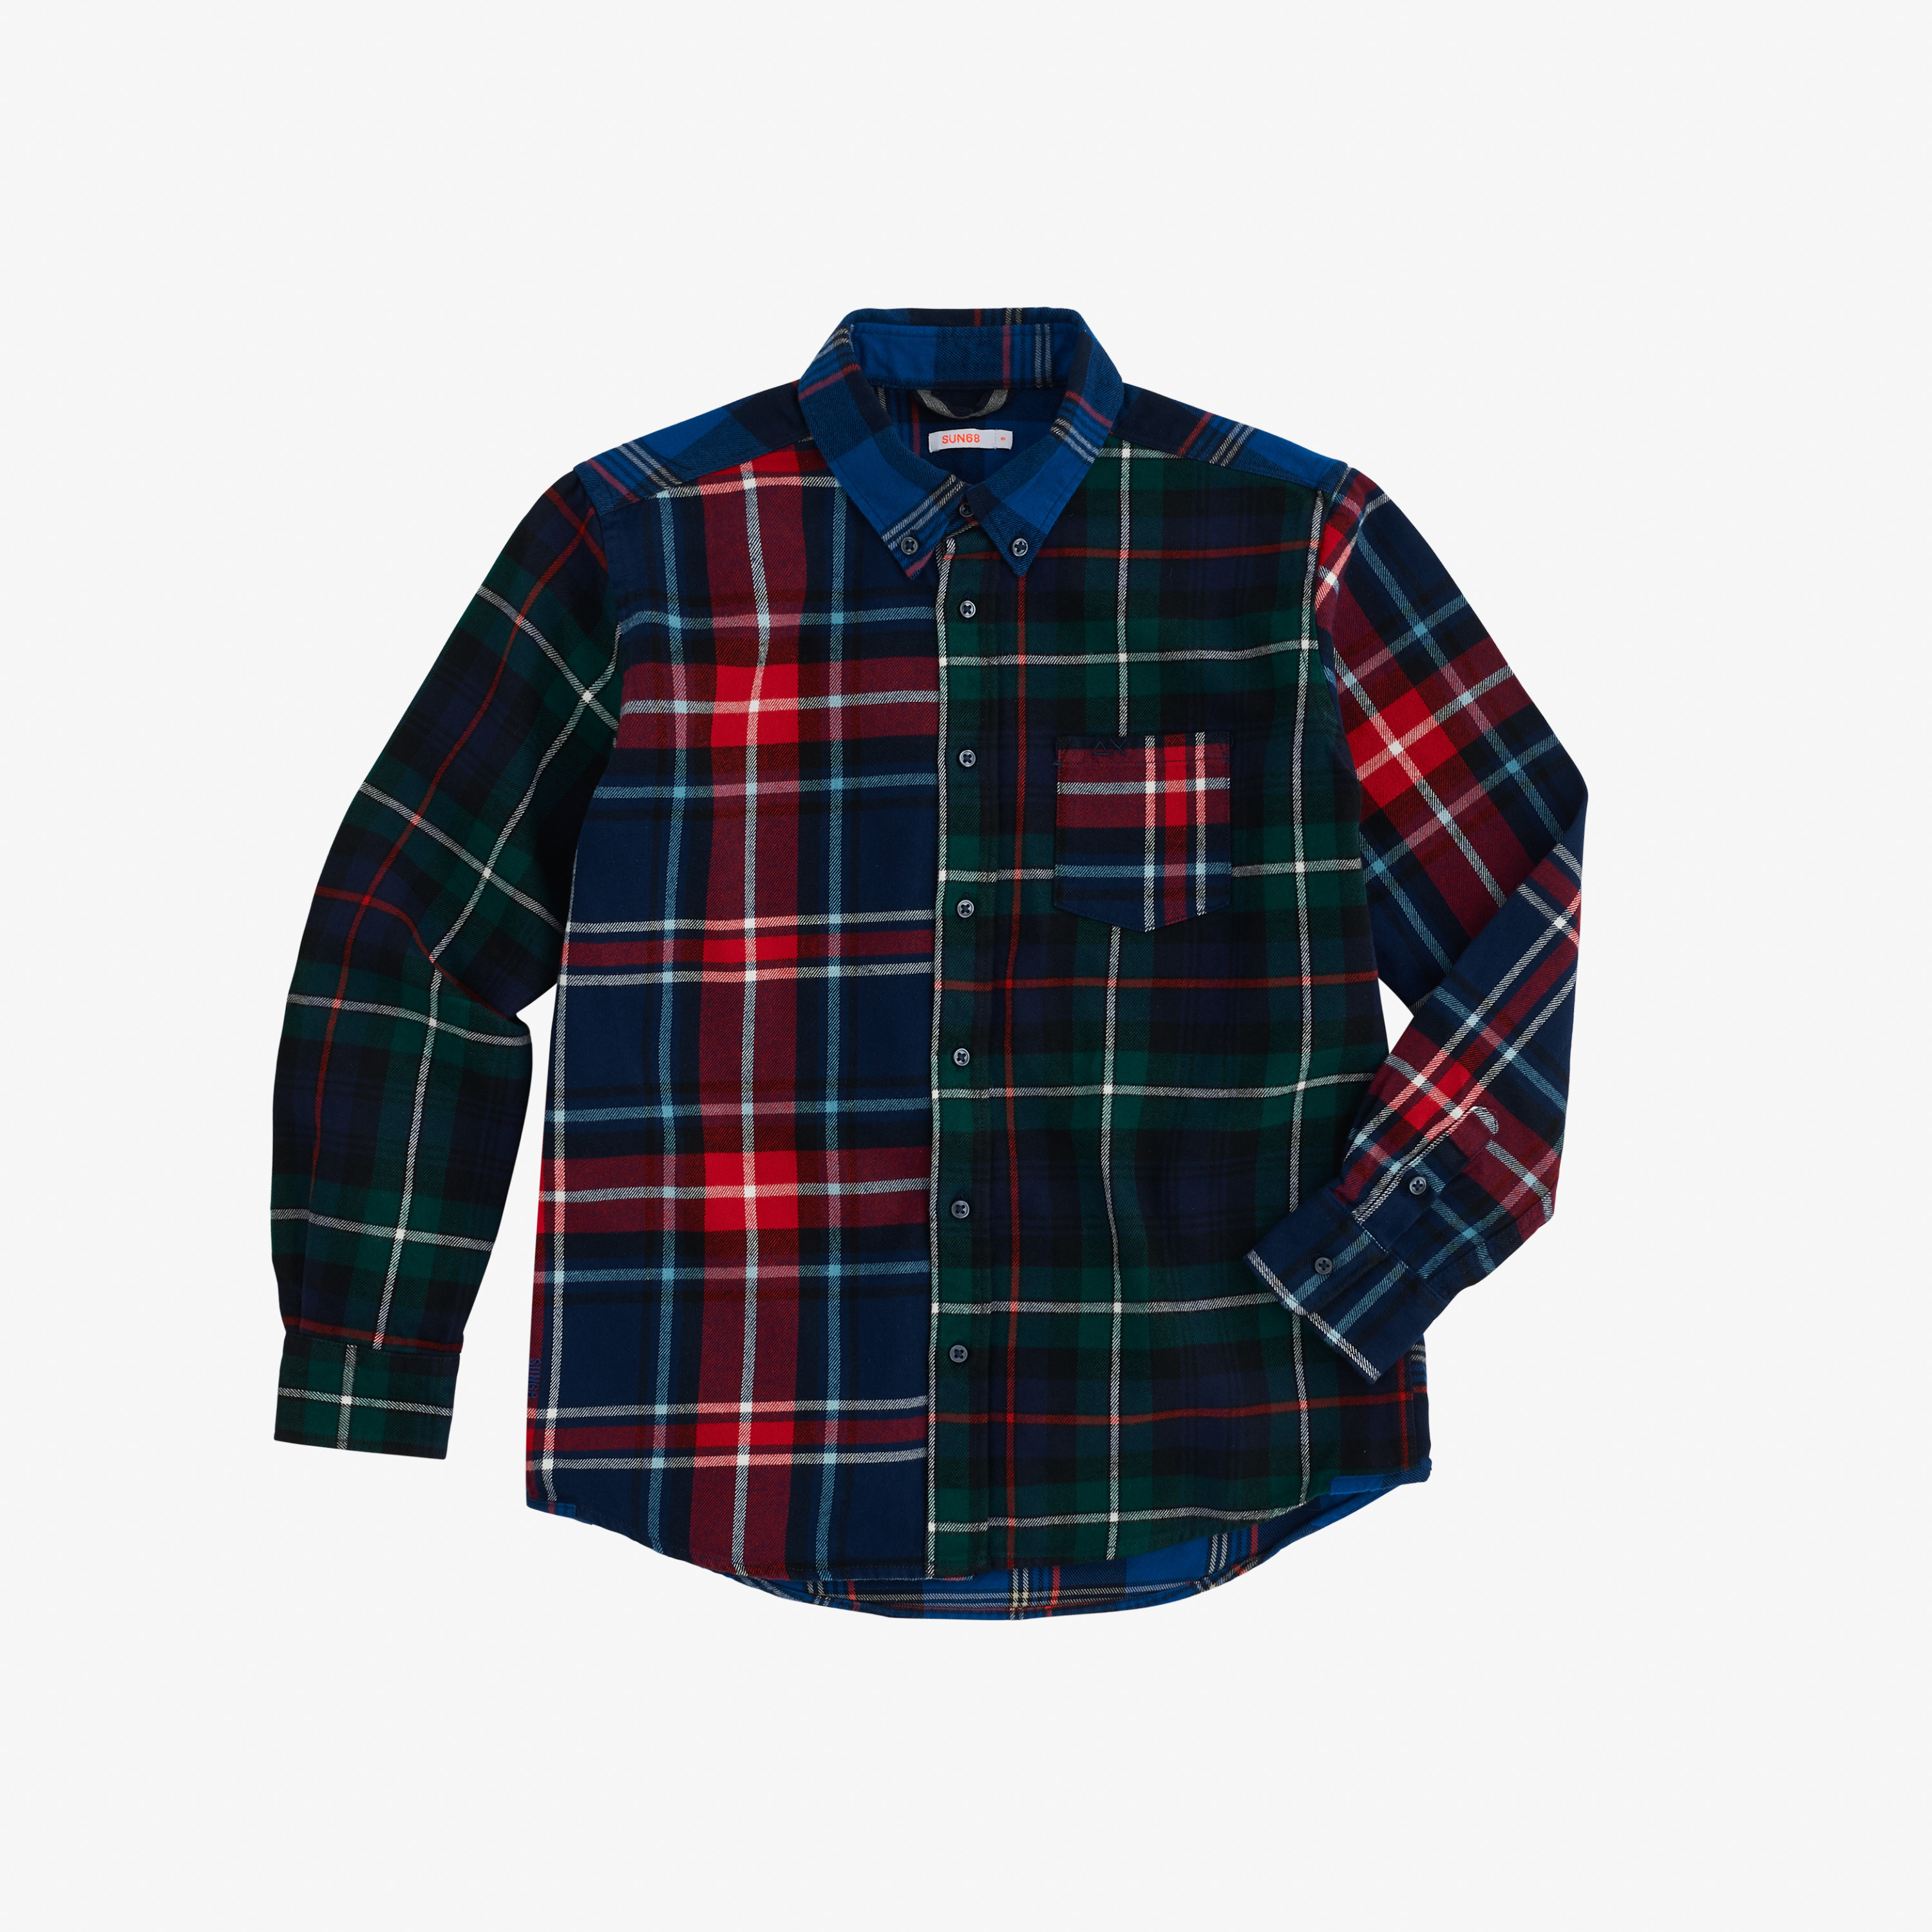 BOY'S SHIRT PATCHWORK B/D L/S NAVY BLUE/RED